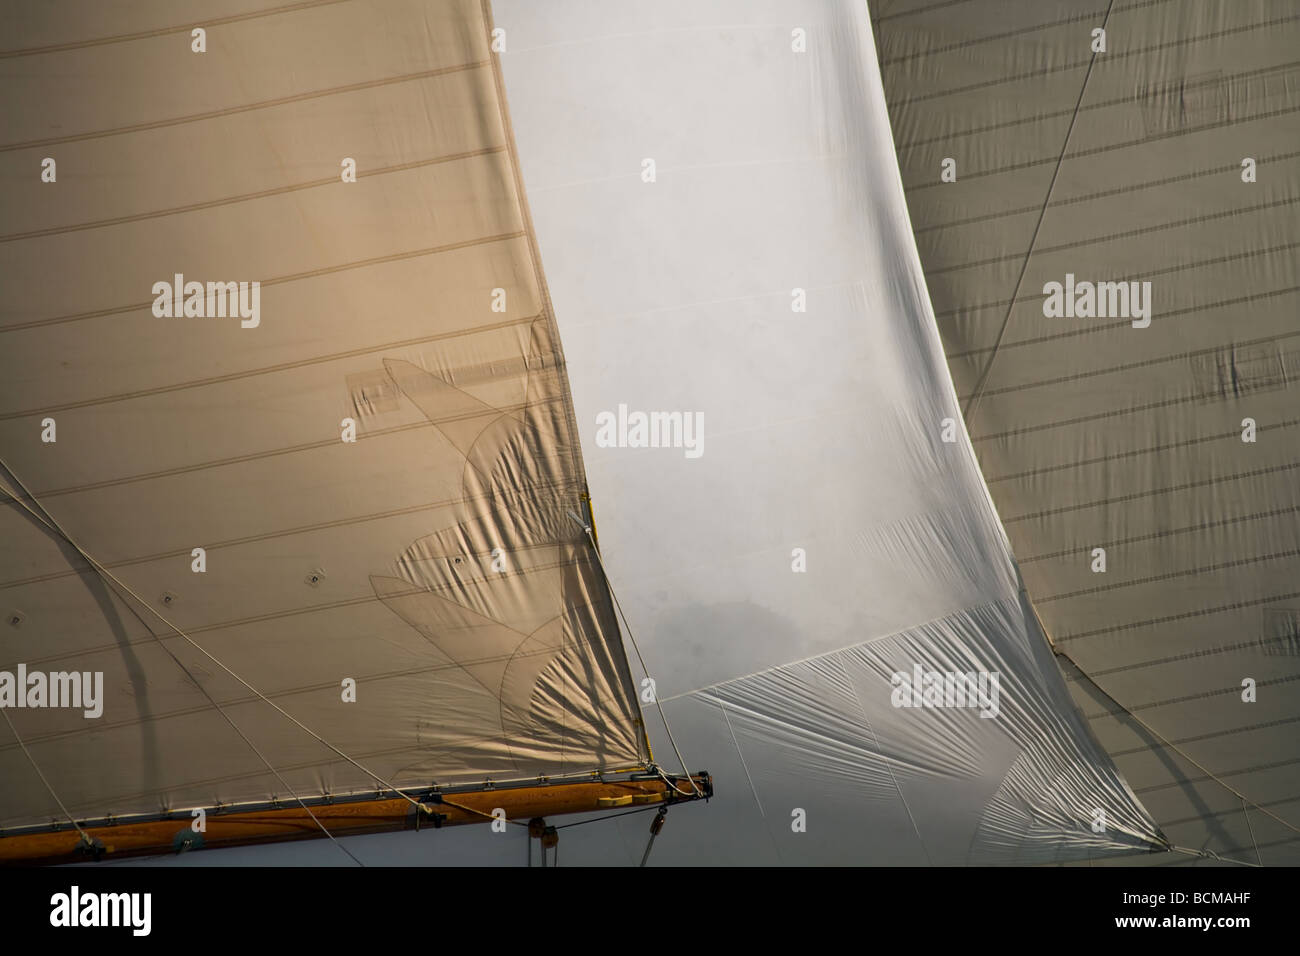 Large plan of Sails of an old sailboat - Stock Image